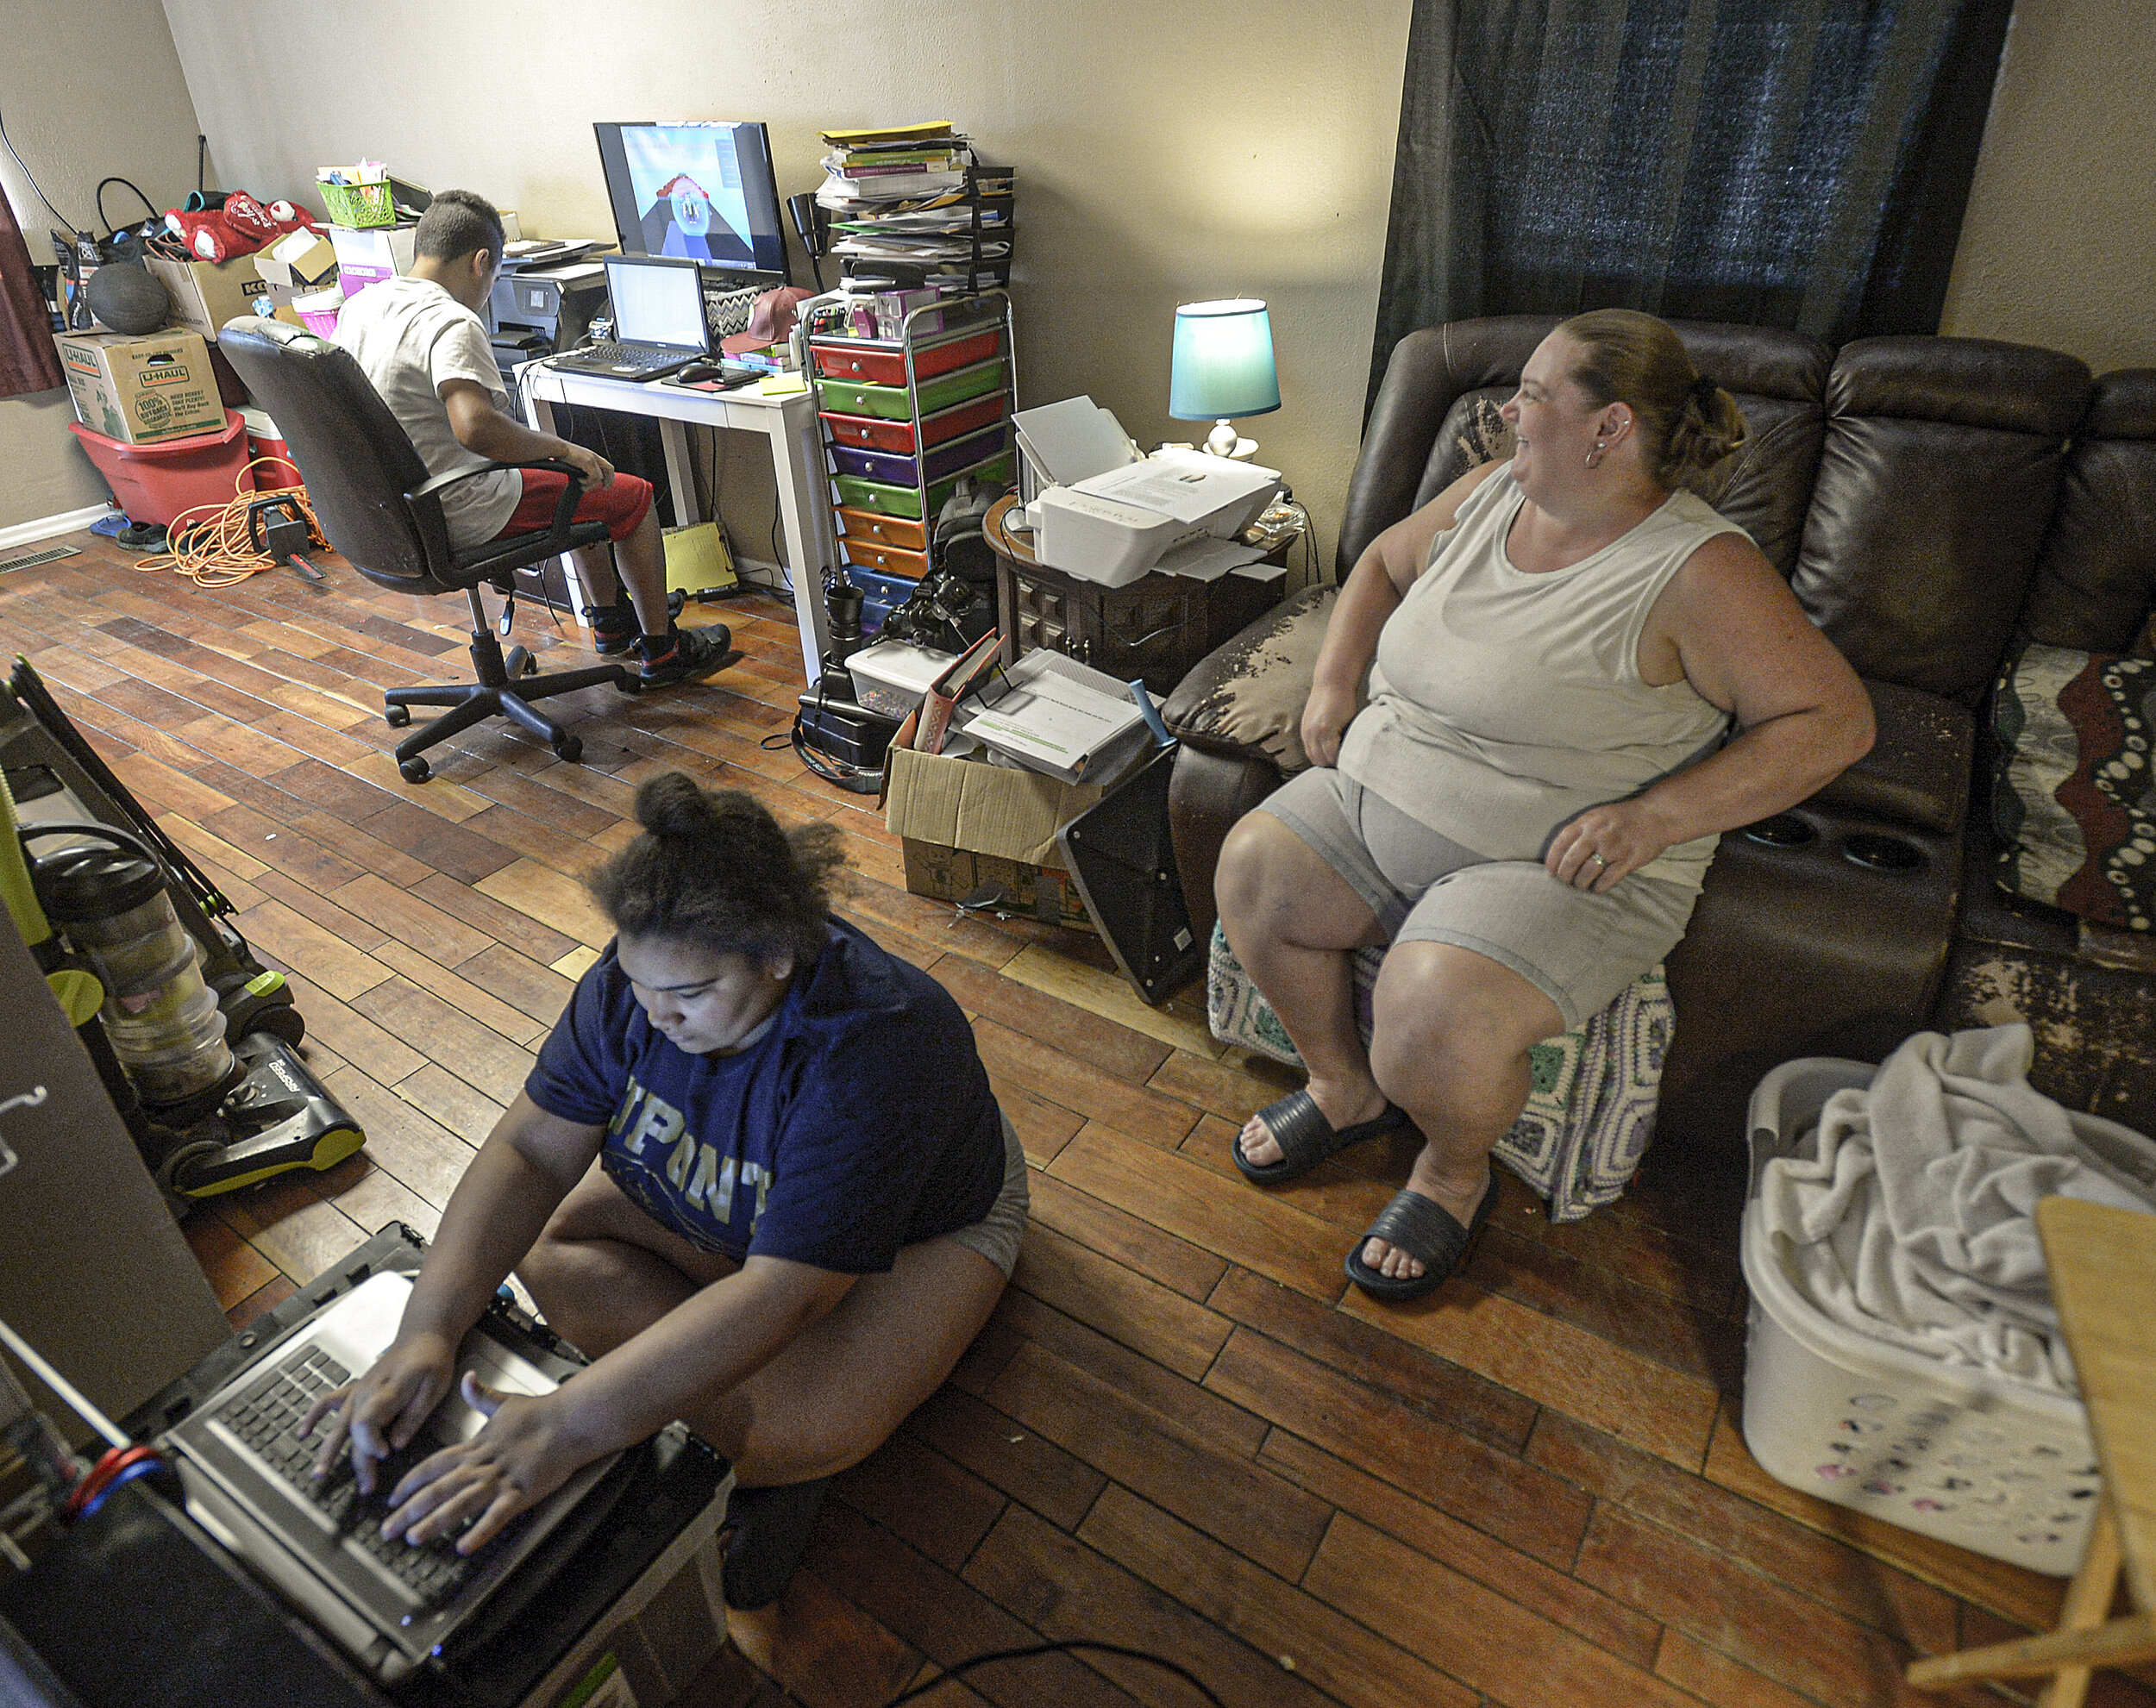 Angelica Smith, 14, left, plays a video game as her brother William Smith, 13, background, works on the family computer. Their mother, Jessica Smith, looks on in the family home on July 9, 2020 in Belle. The family is not able to get to their designated summer feeding site because they do not own a vehicle. Photo by F. Brian Ferguson